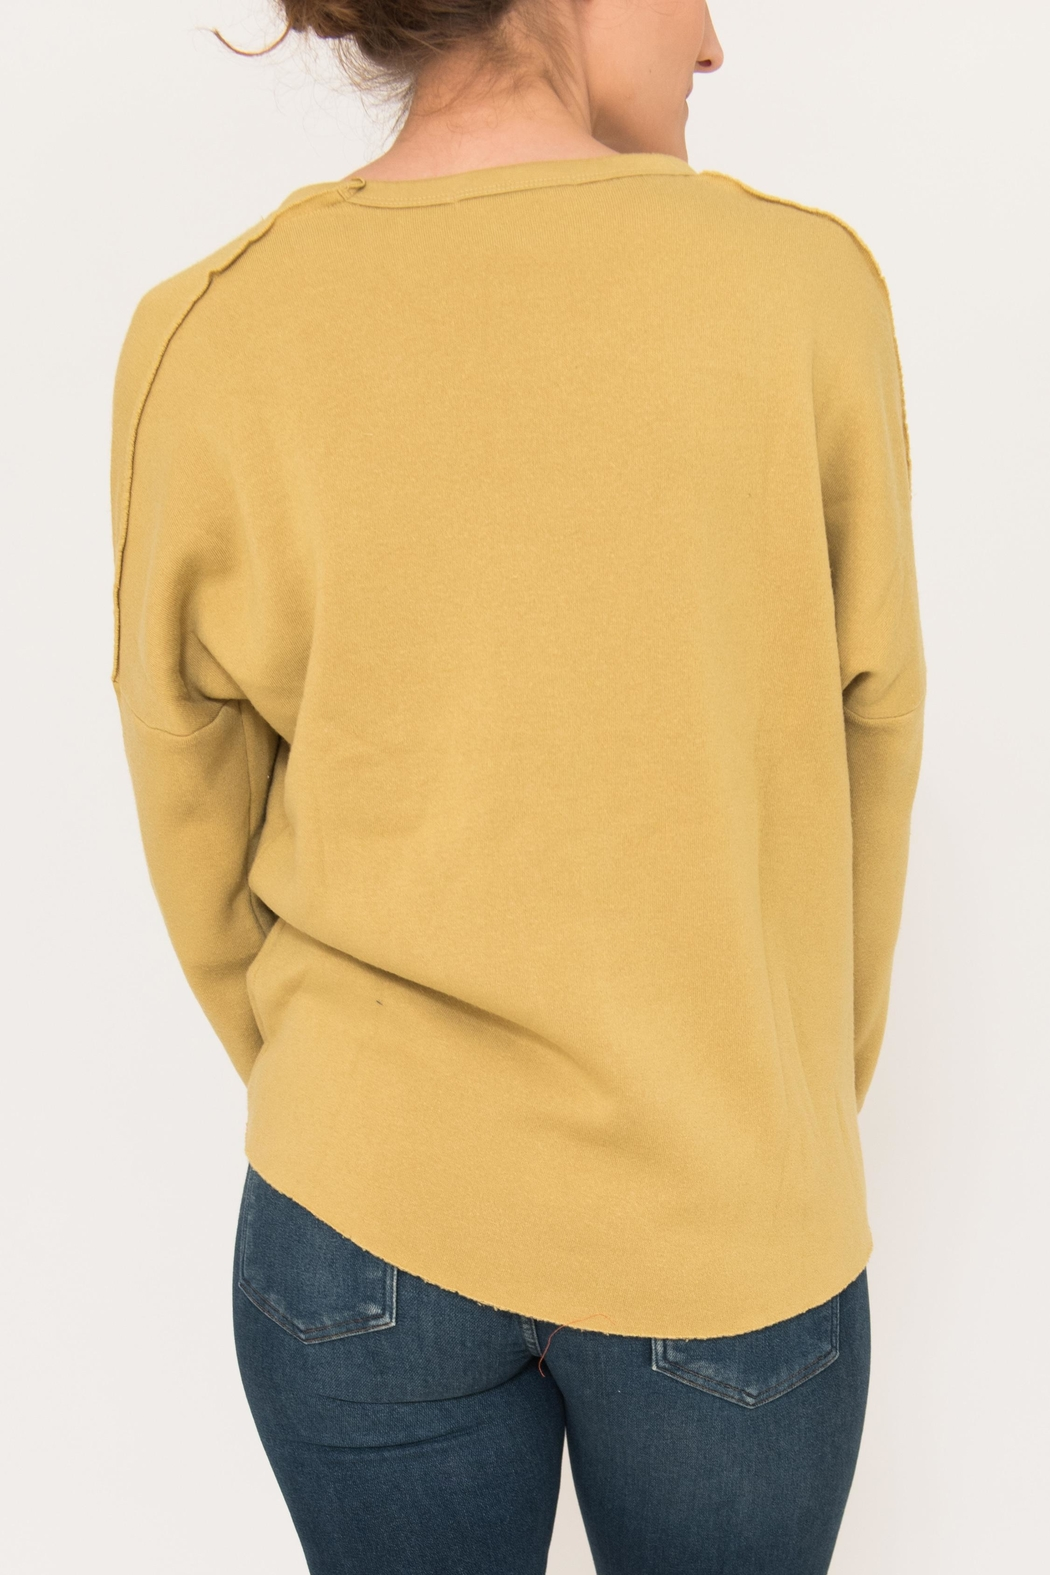 Project Social T Paw Paneled Sweatshirt - Front Full Image